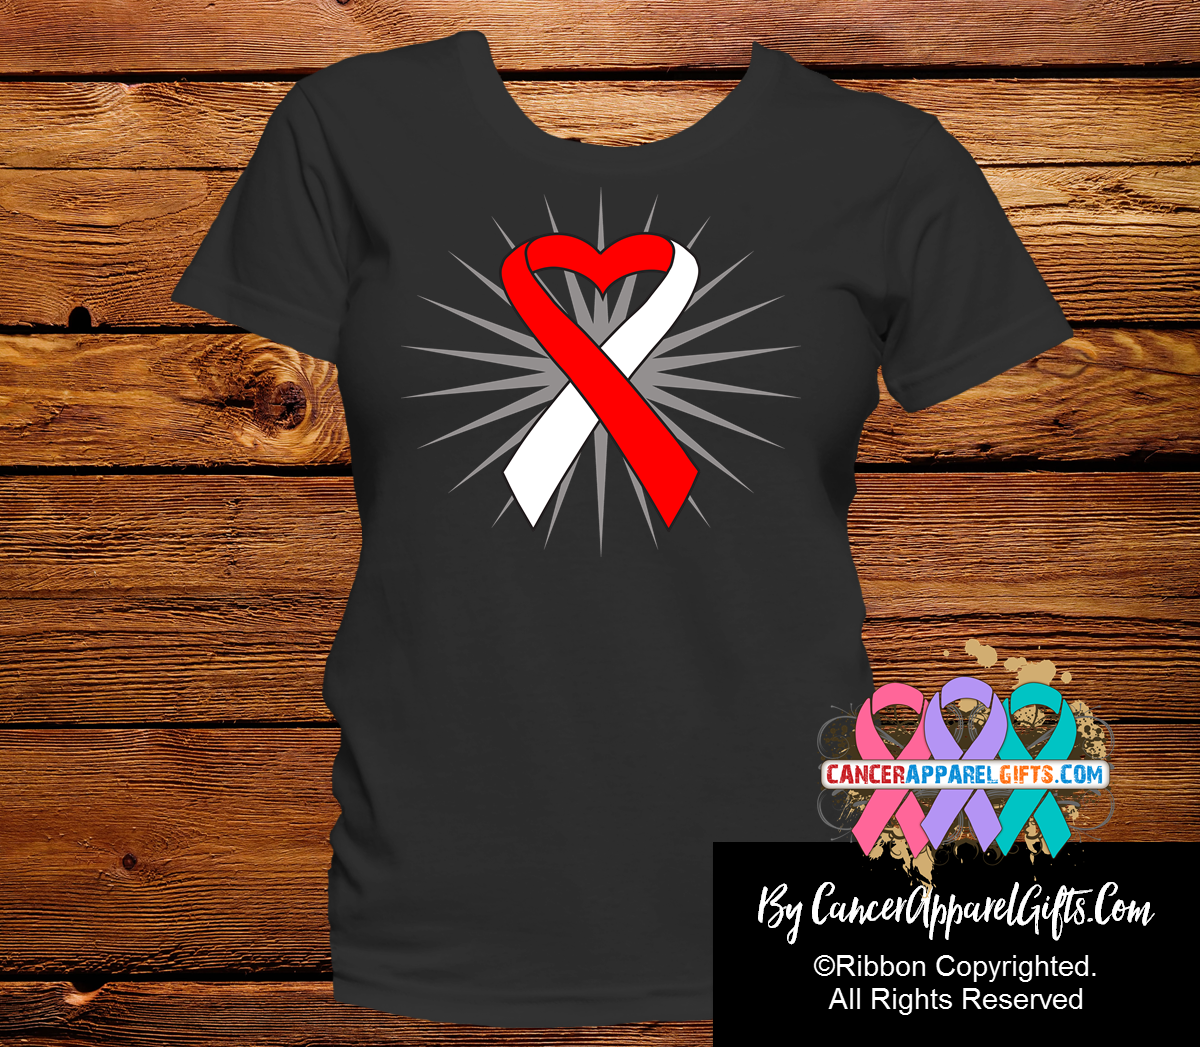 Oral Cancer Awareness Heart Ribbon Shirts - Cancer Apparel and Gifts